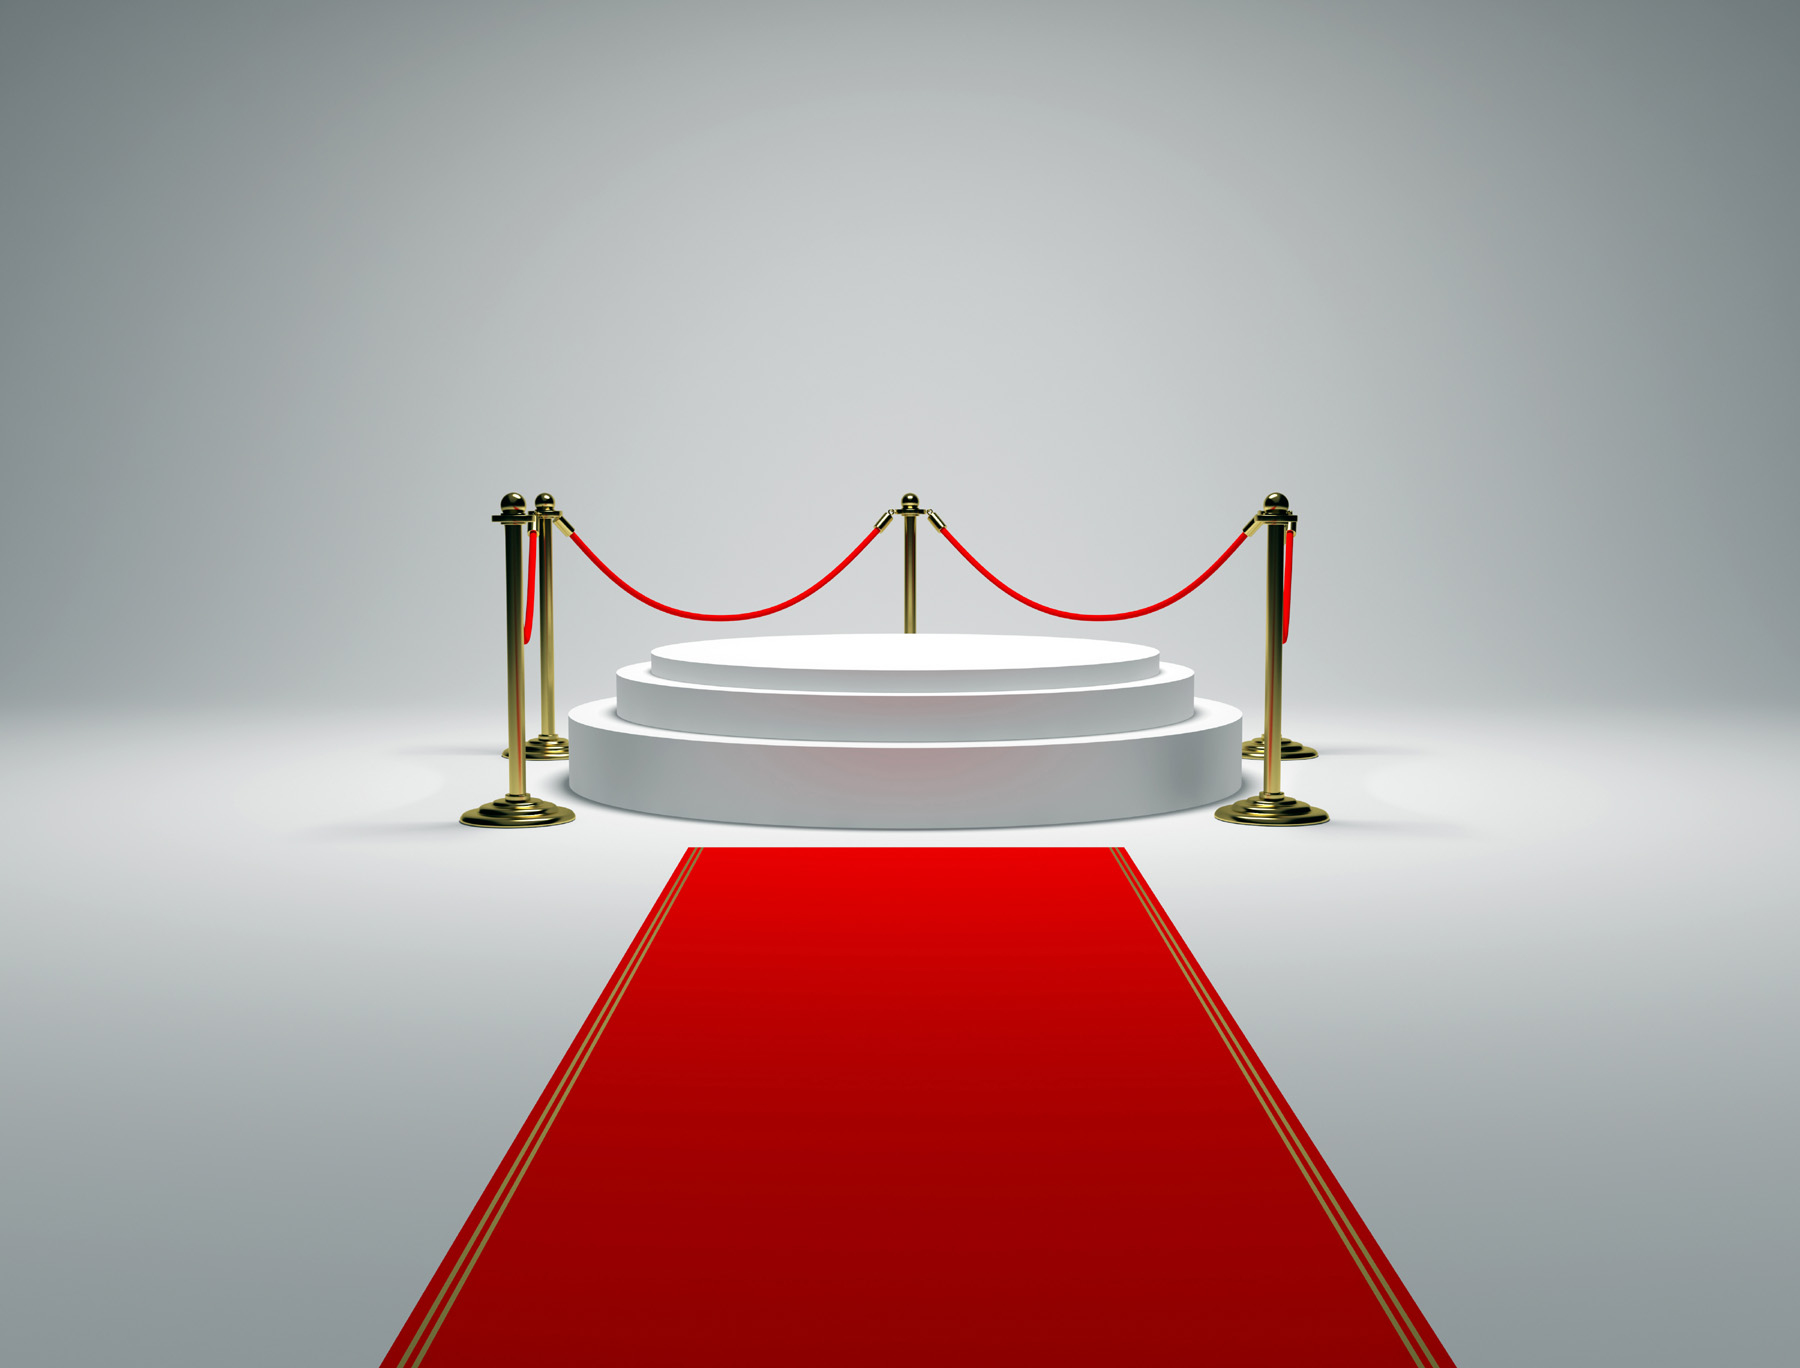 Circular booth with guardrails on the red carpet 49947